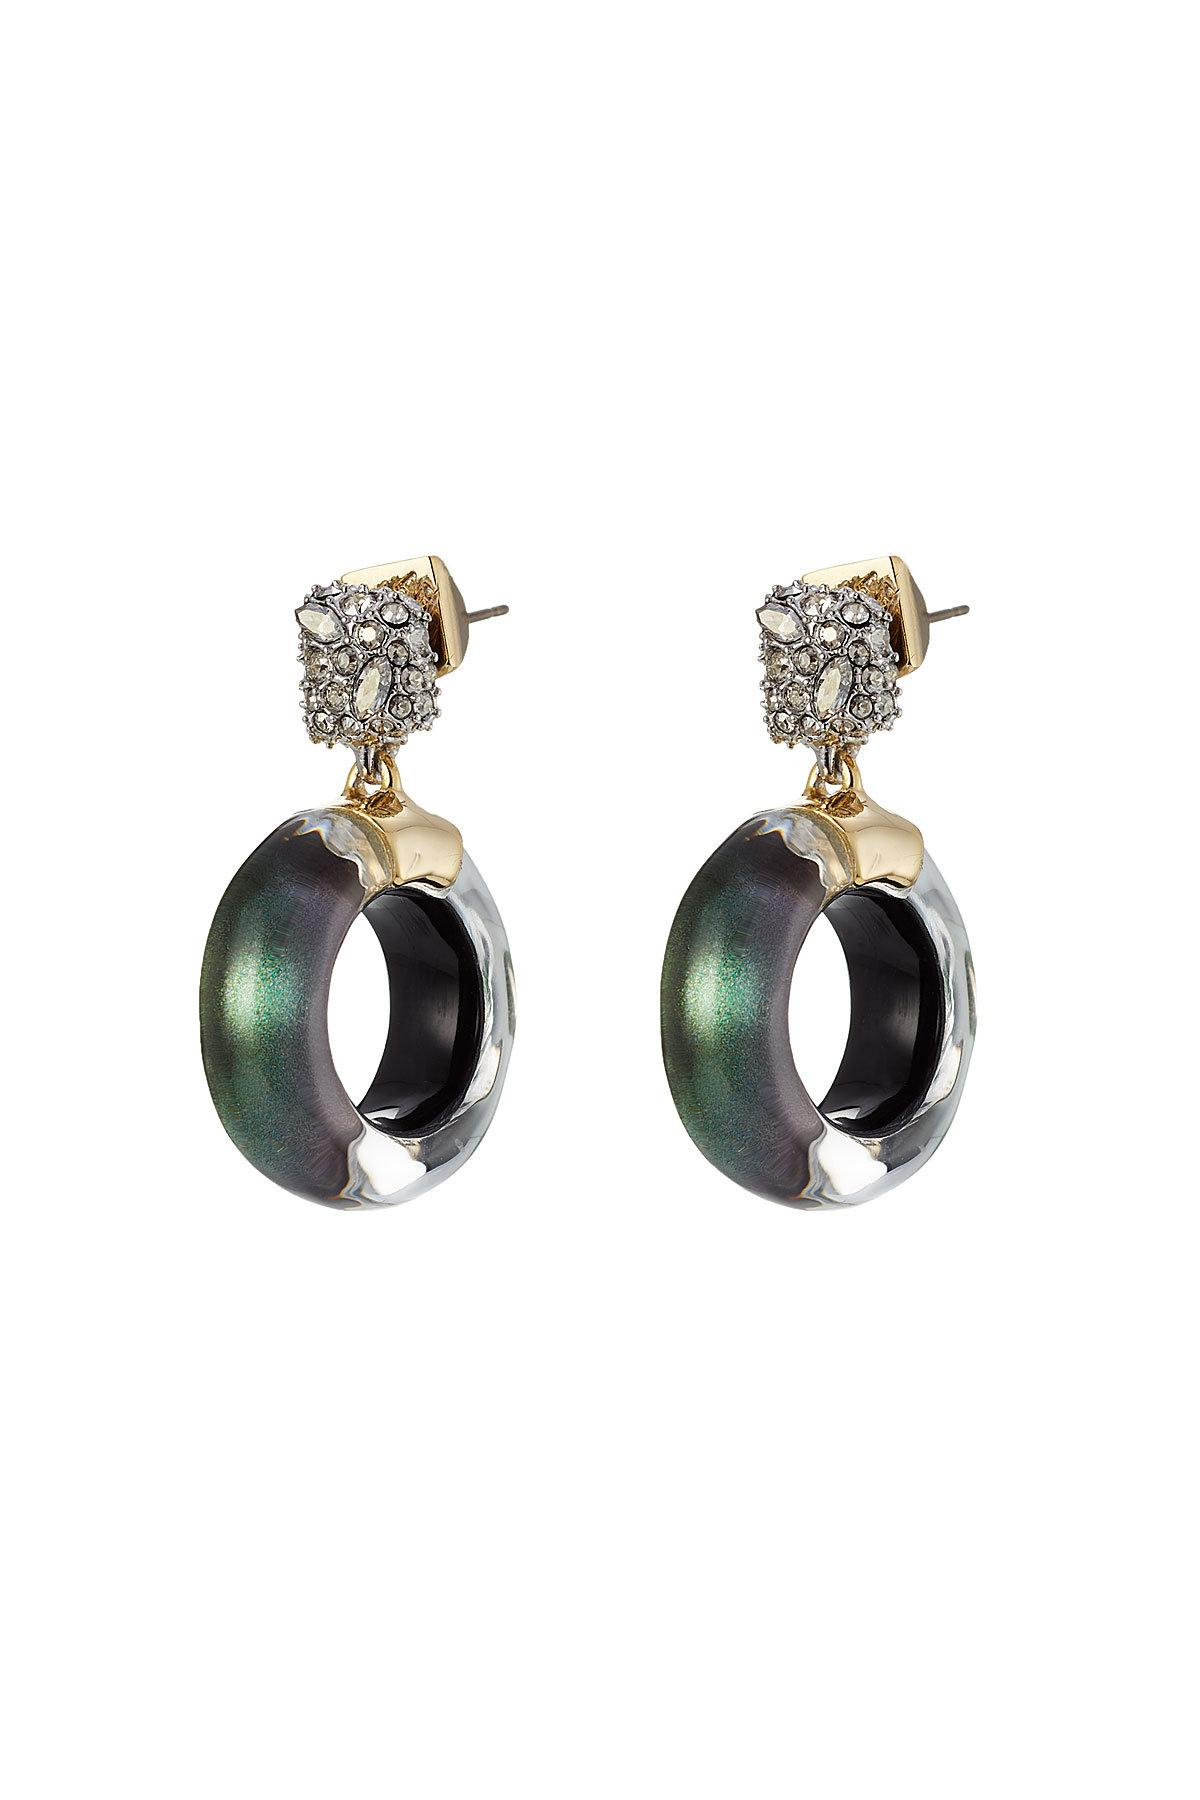 Alexis Bittar 10kt Gold Earrings With Lucite And Crystals In Green